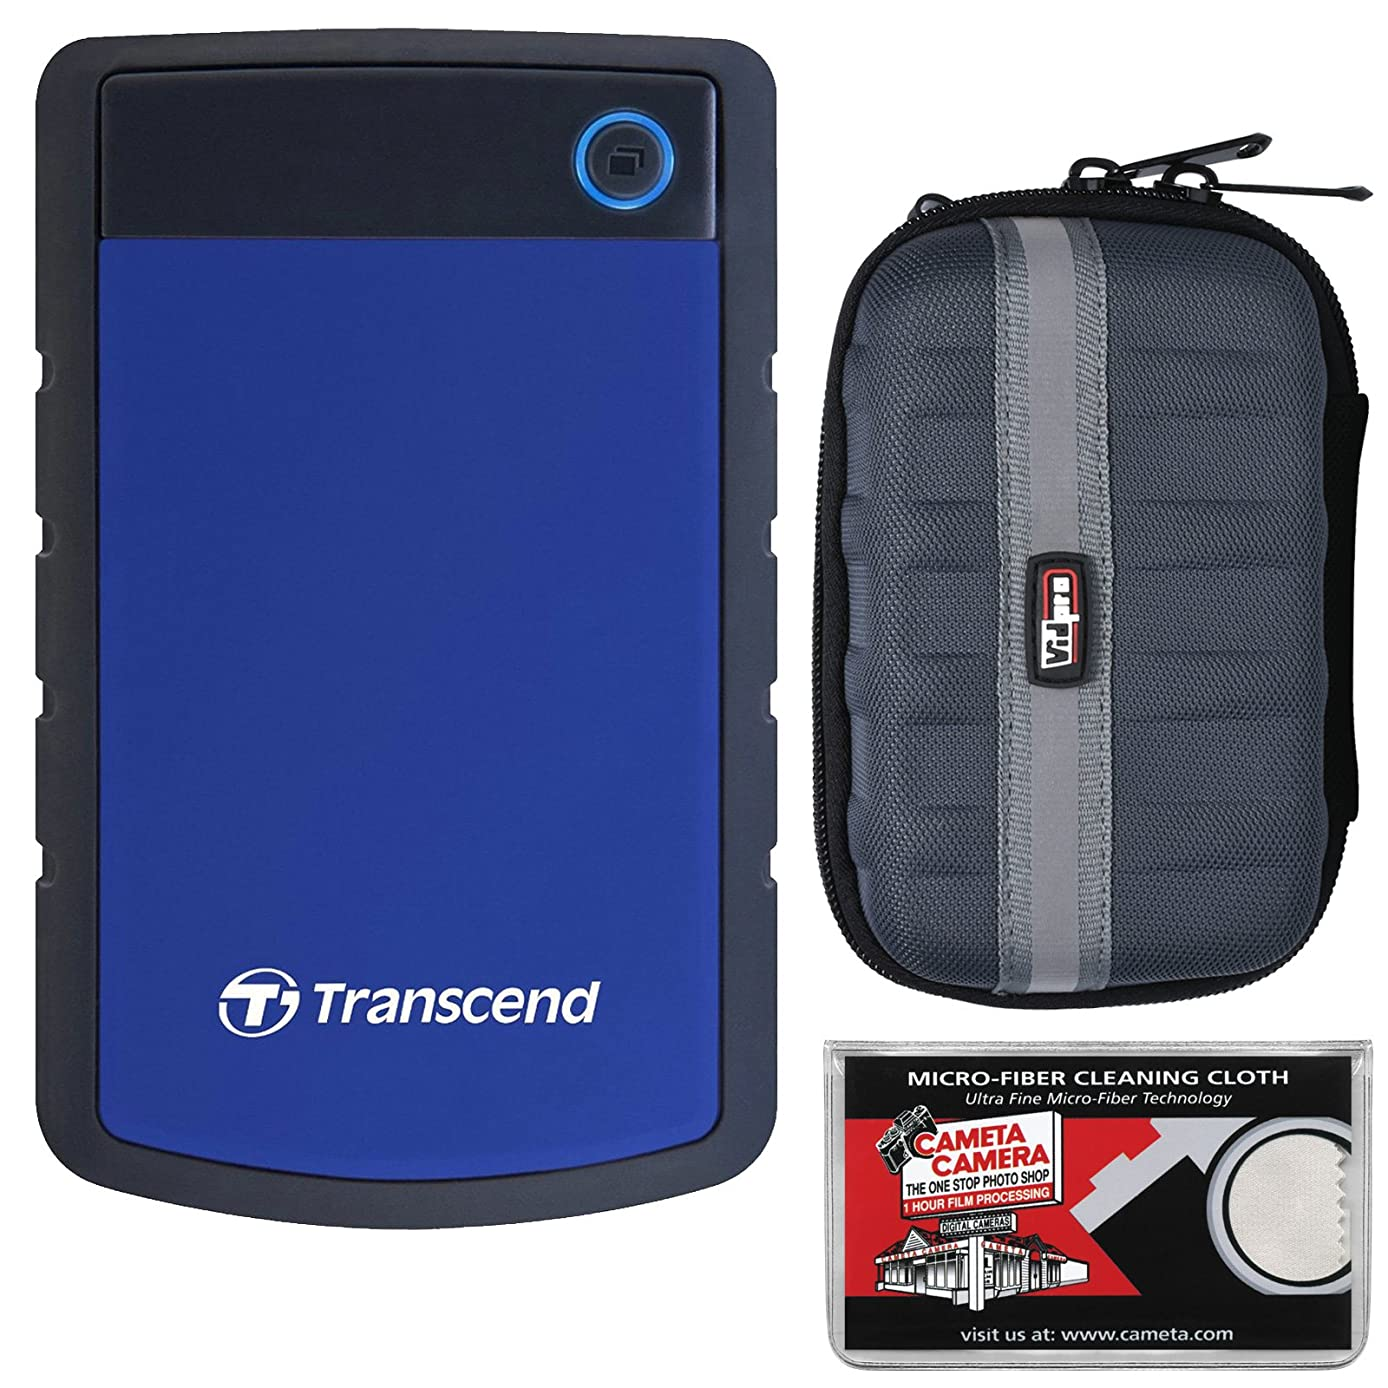 Transcend 2TB USB 3.1 StoreJet 25H3 Portable Hard Drive (Navy Blue) with Case + Cleaning Cloth